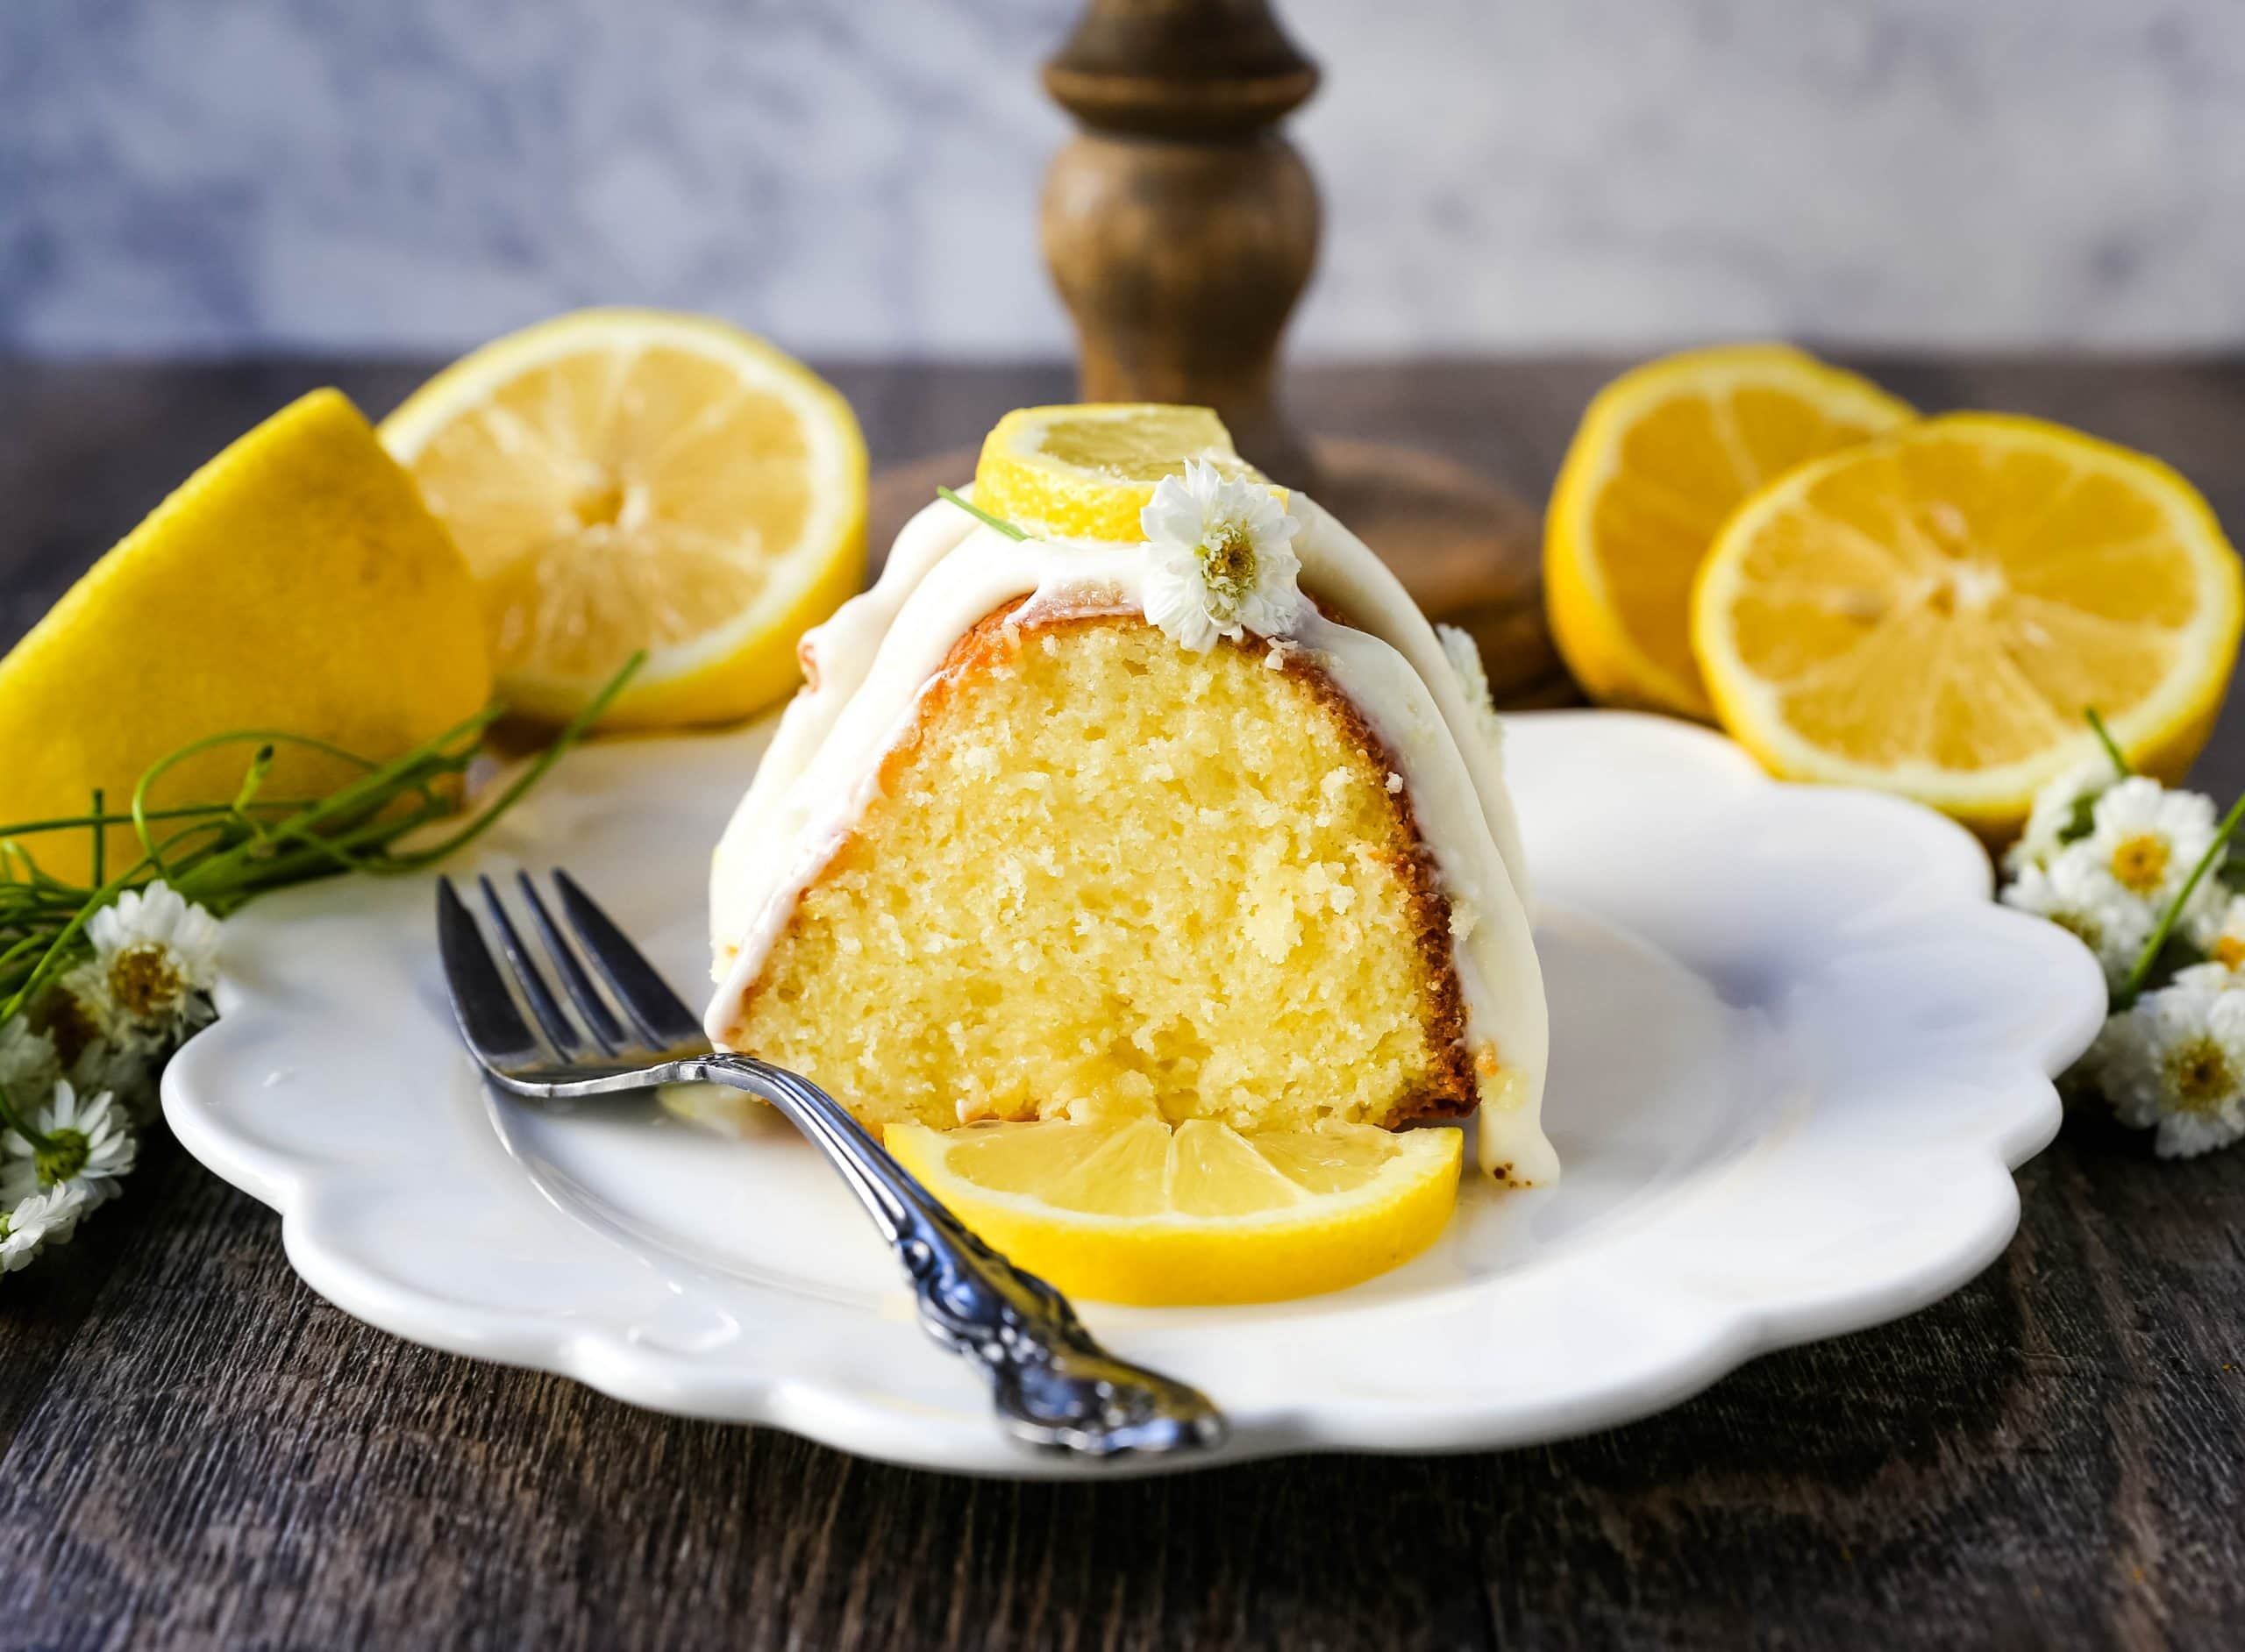 Lemon Bundt Cake. Moist, flavorful lemon bundt cake with a fresh cream cheese lemon glaze. Tips and tricks for making the perfect lemon bundt cake. www.modernhoney.com #lemoncake #lemonbundtcake #bundtcake #cake